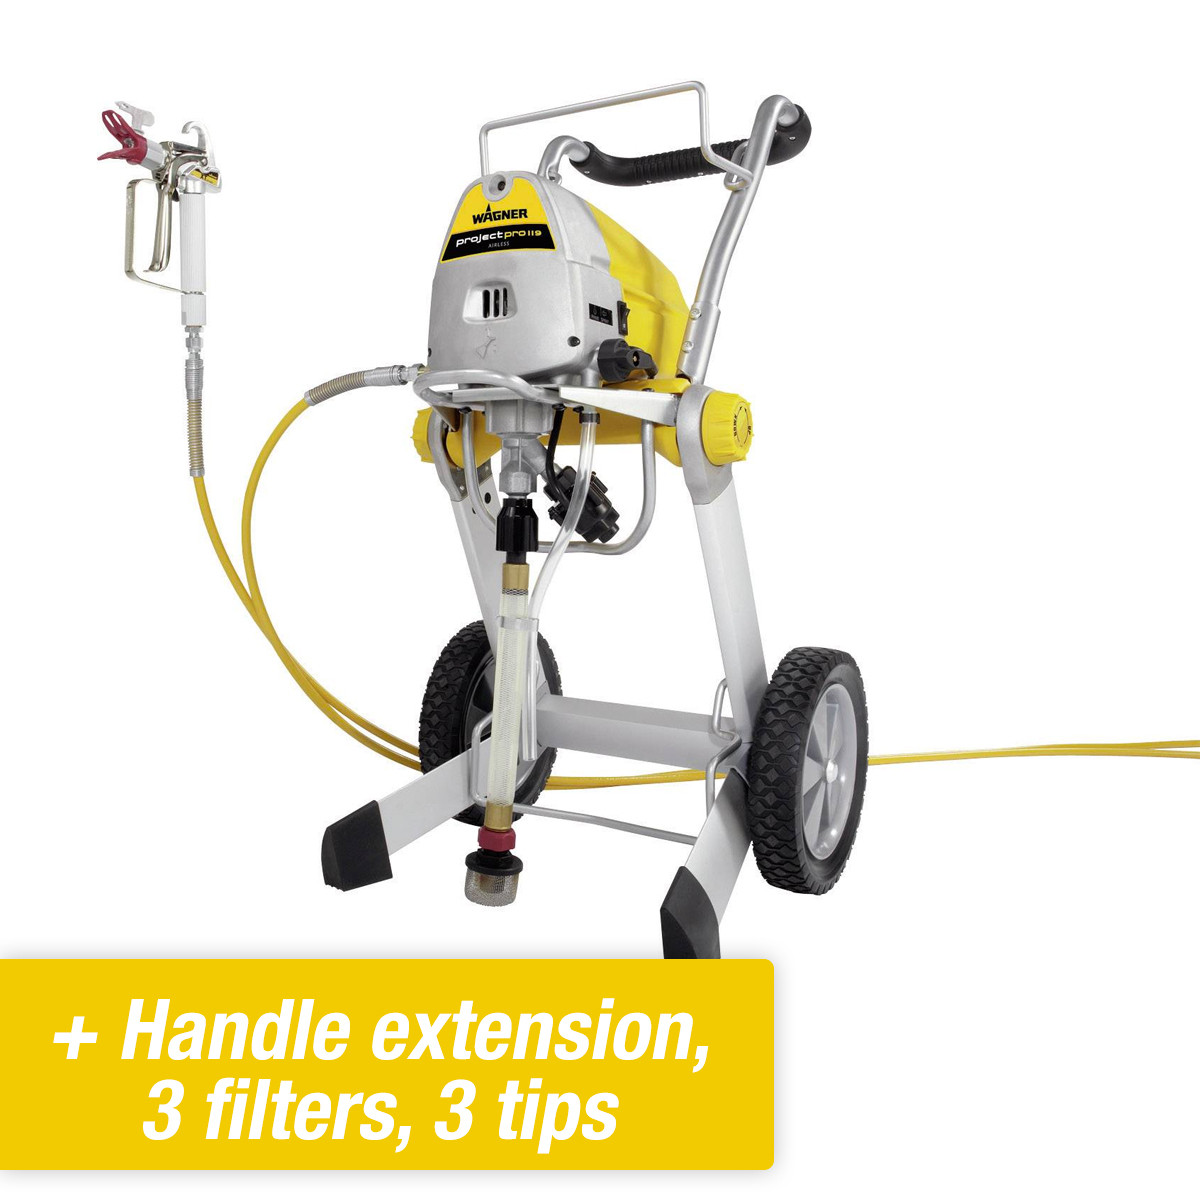 Super Wagner Project Pro 119 Airless Paint Sprayer BO58